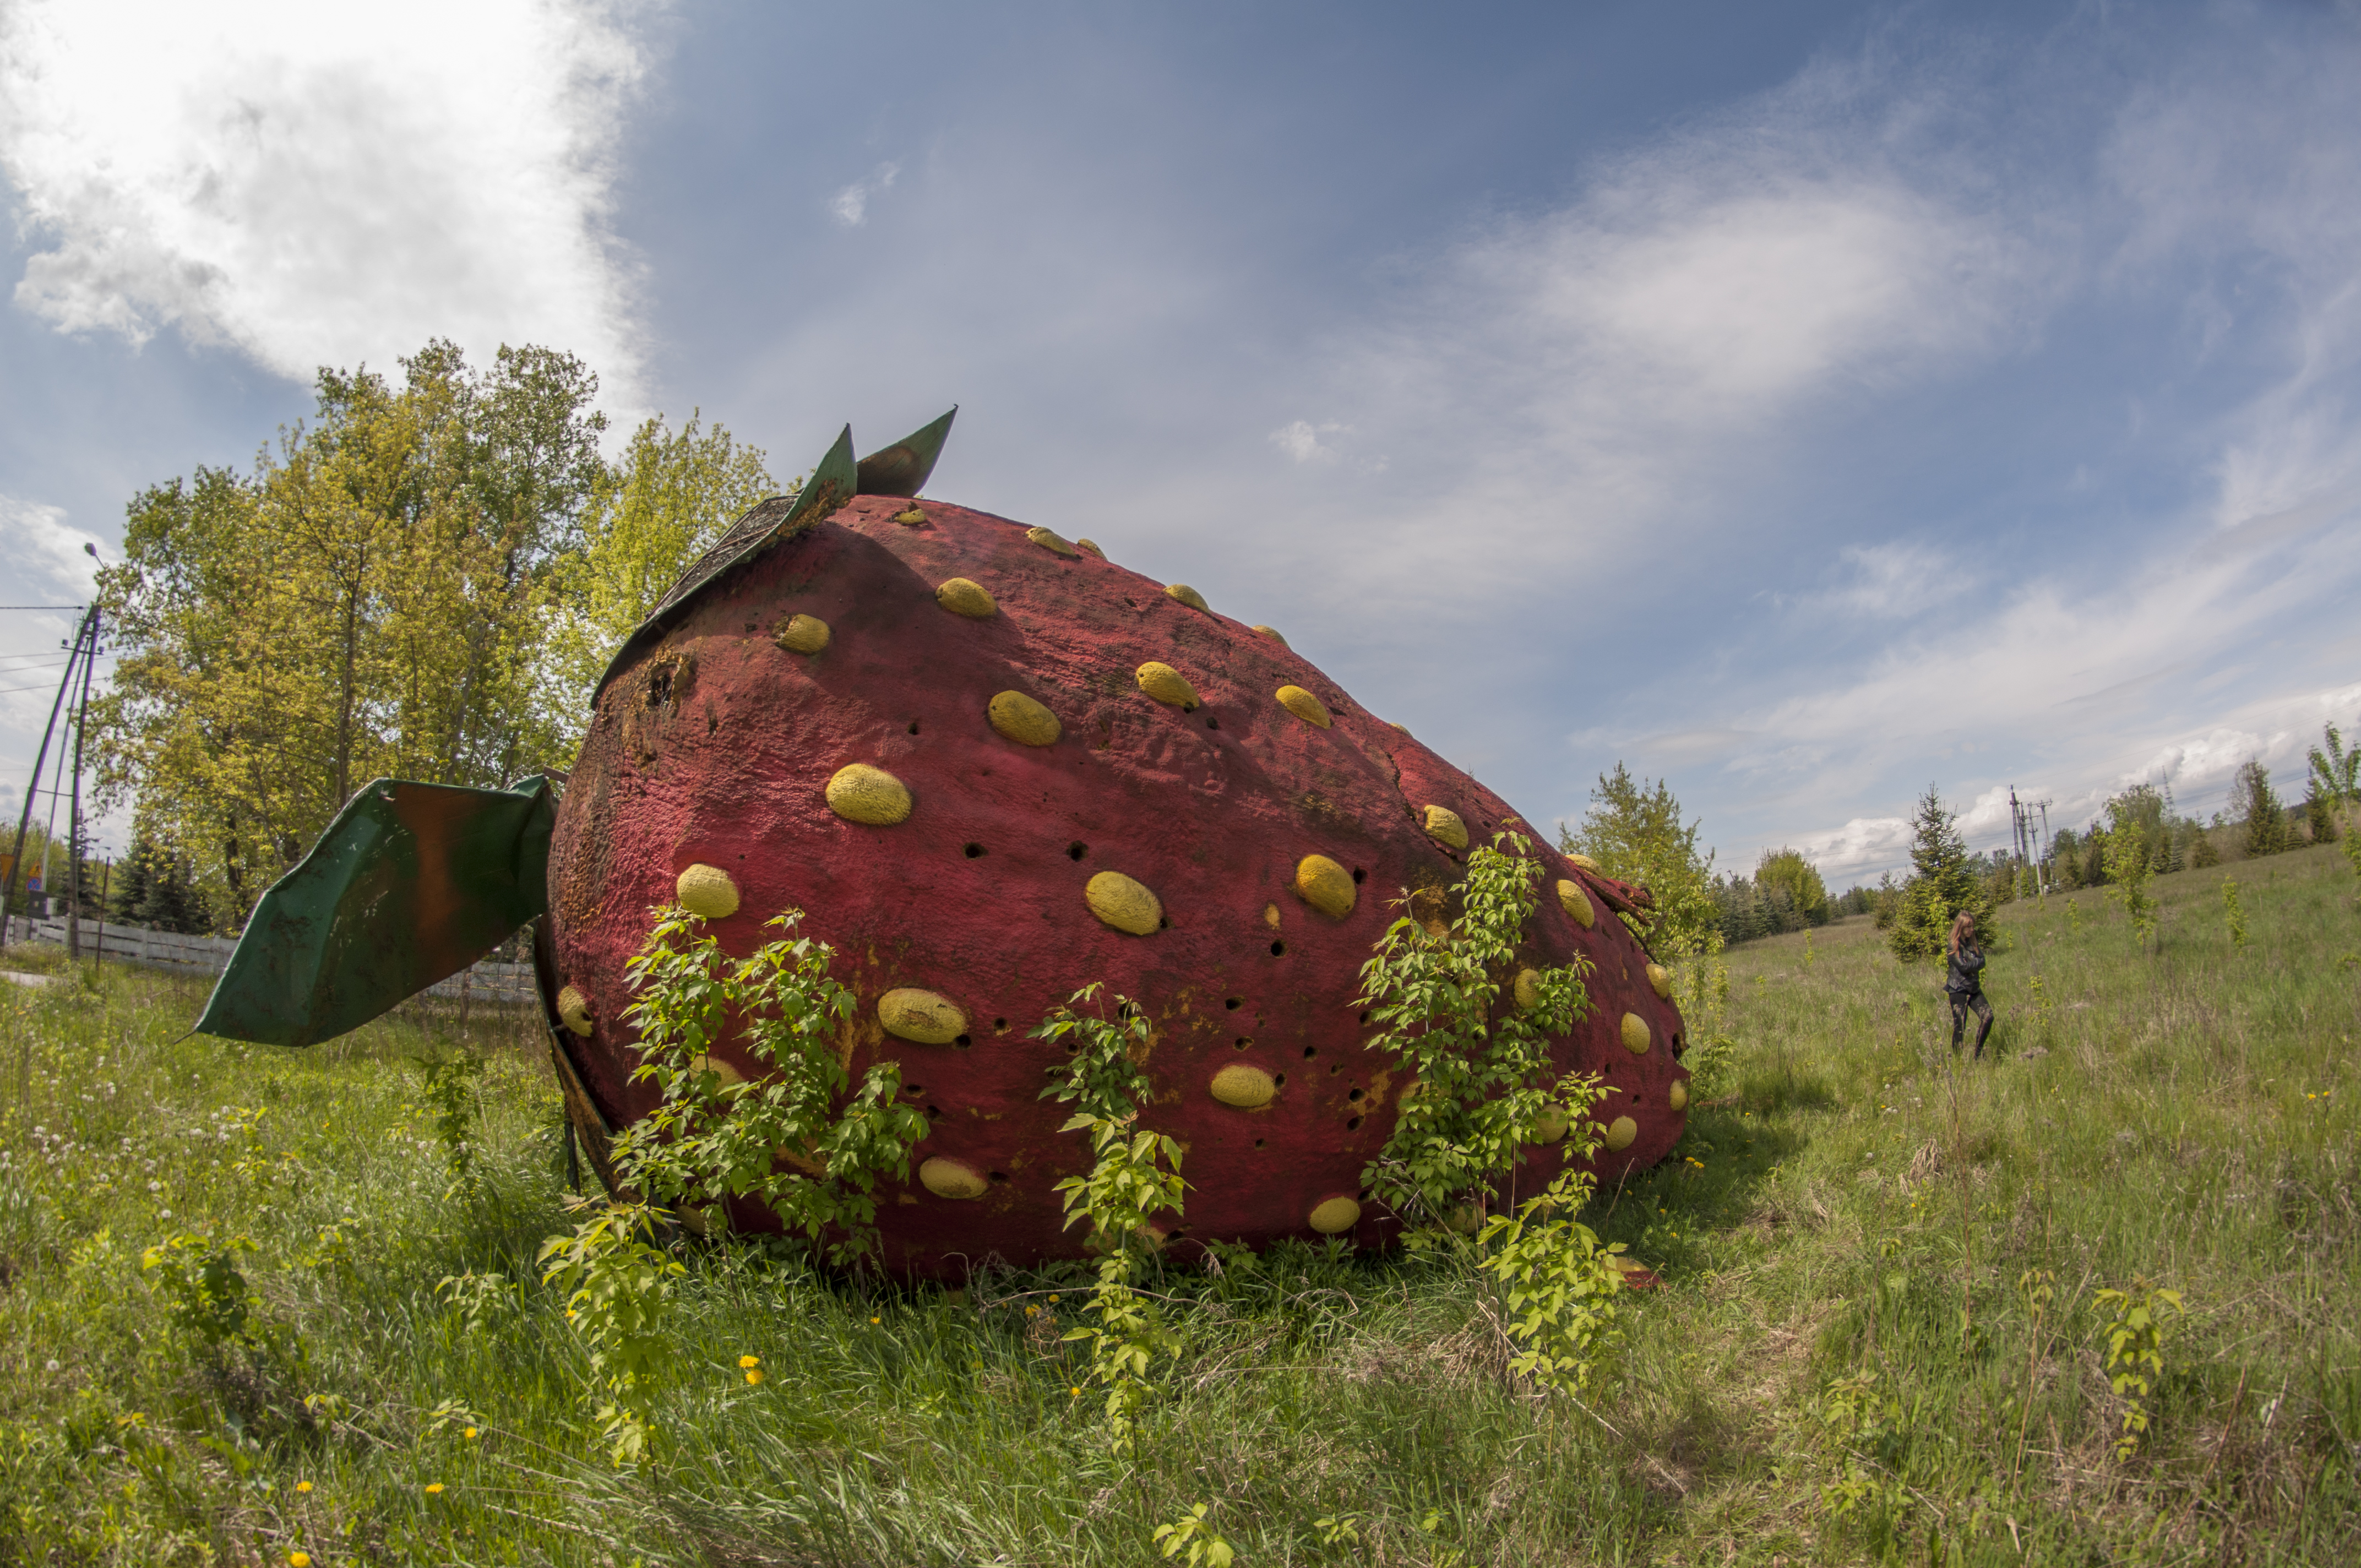 We Captured This Huge, Abandoned Strawberry Twice – In The Springtime And In The Wintertime. The Difference Is Significant! (10 Pictures)